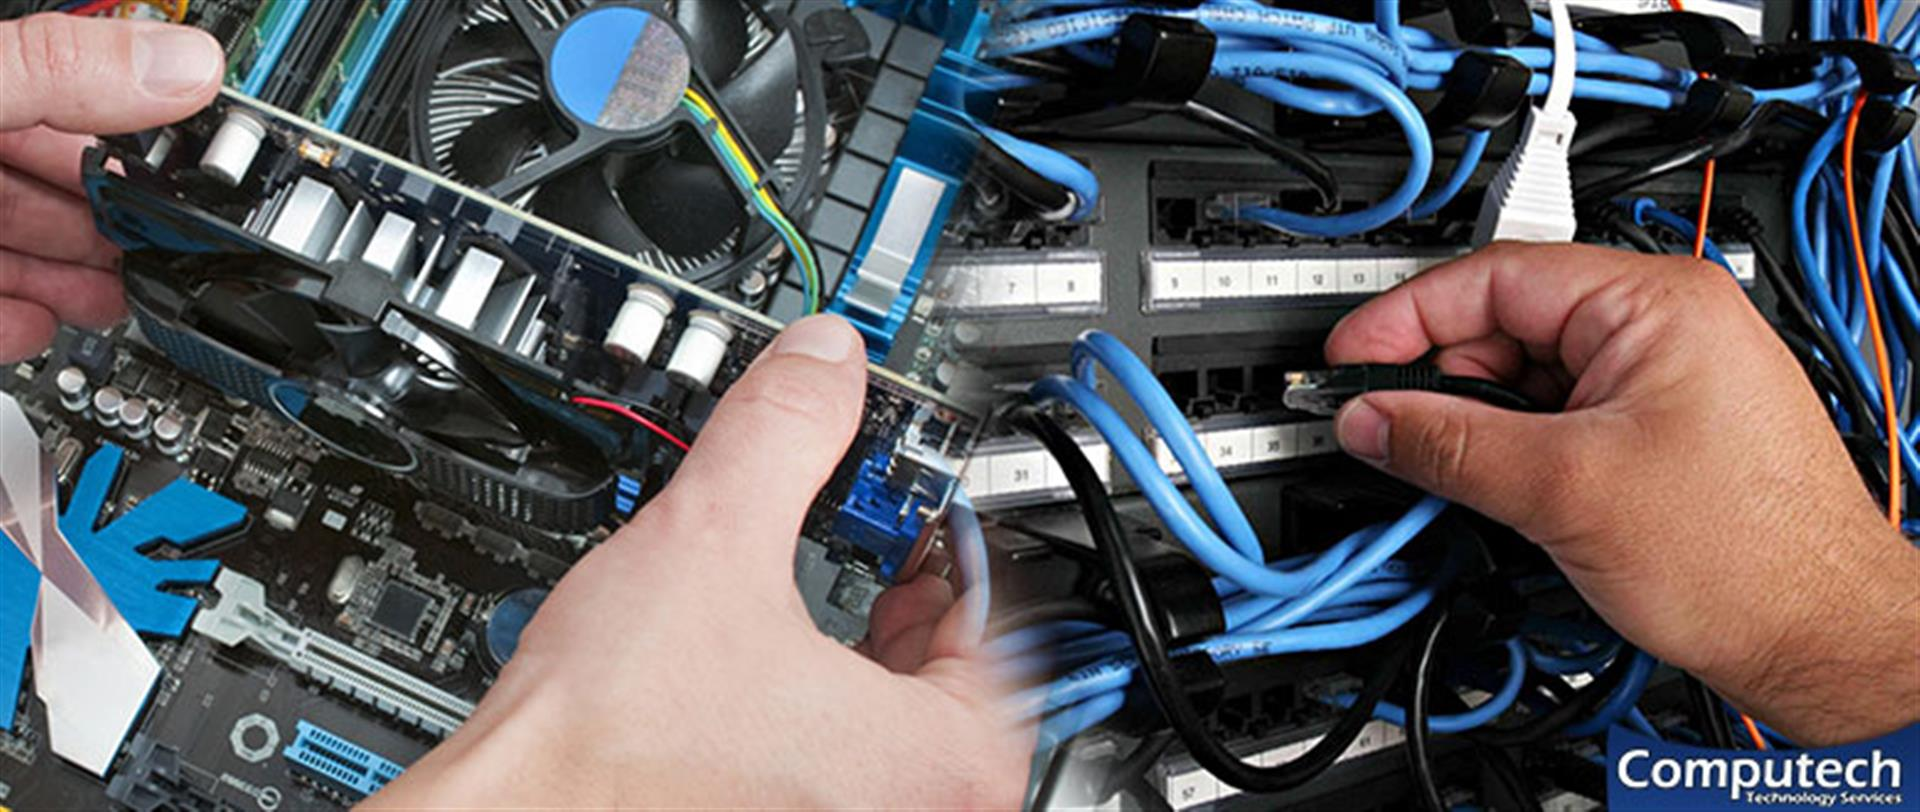 Arlington Tennessee On Site Computer PC and Printer Repairs, Network, Voice & Data Cabling Services